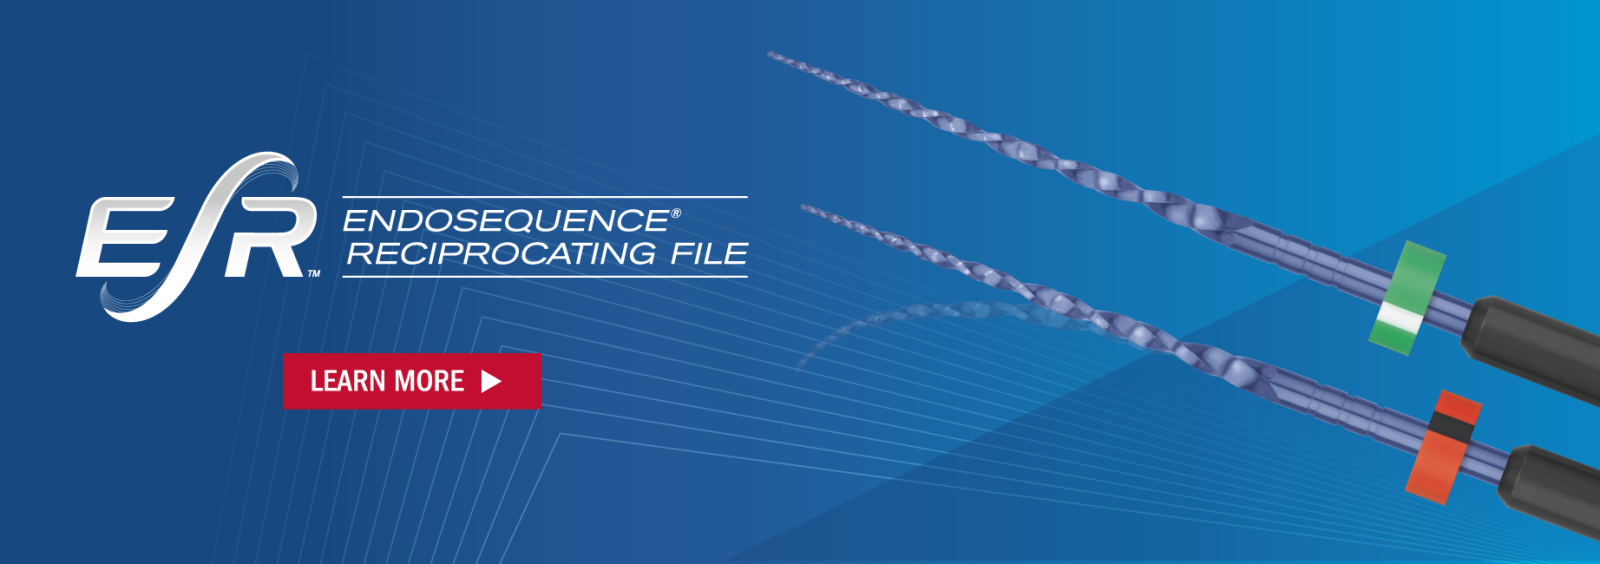 ESR - Endosequence Reciprocating File. Learn More